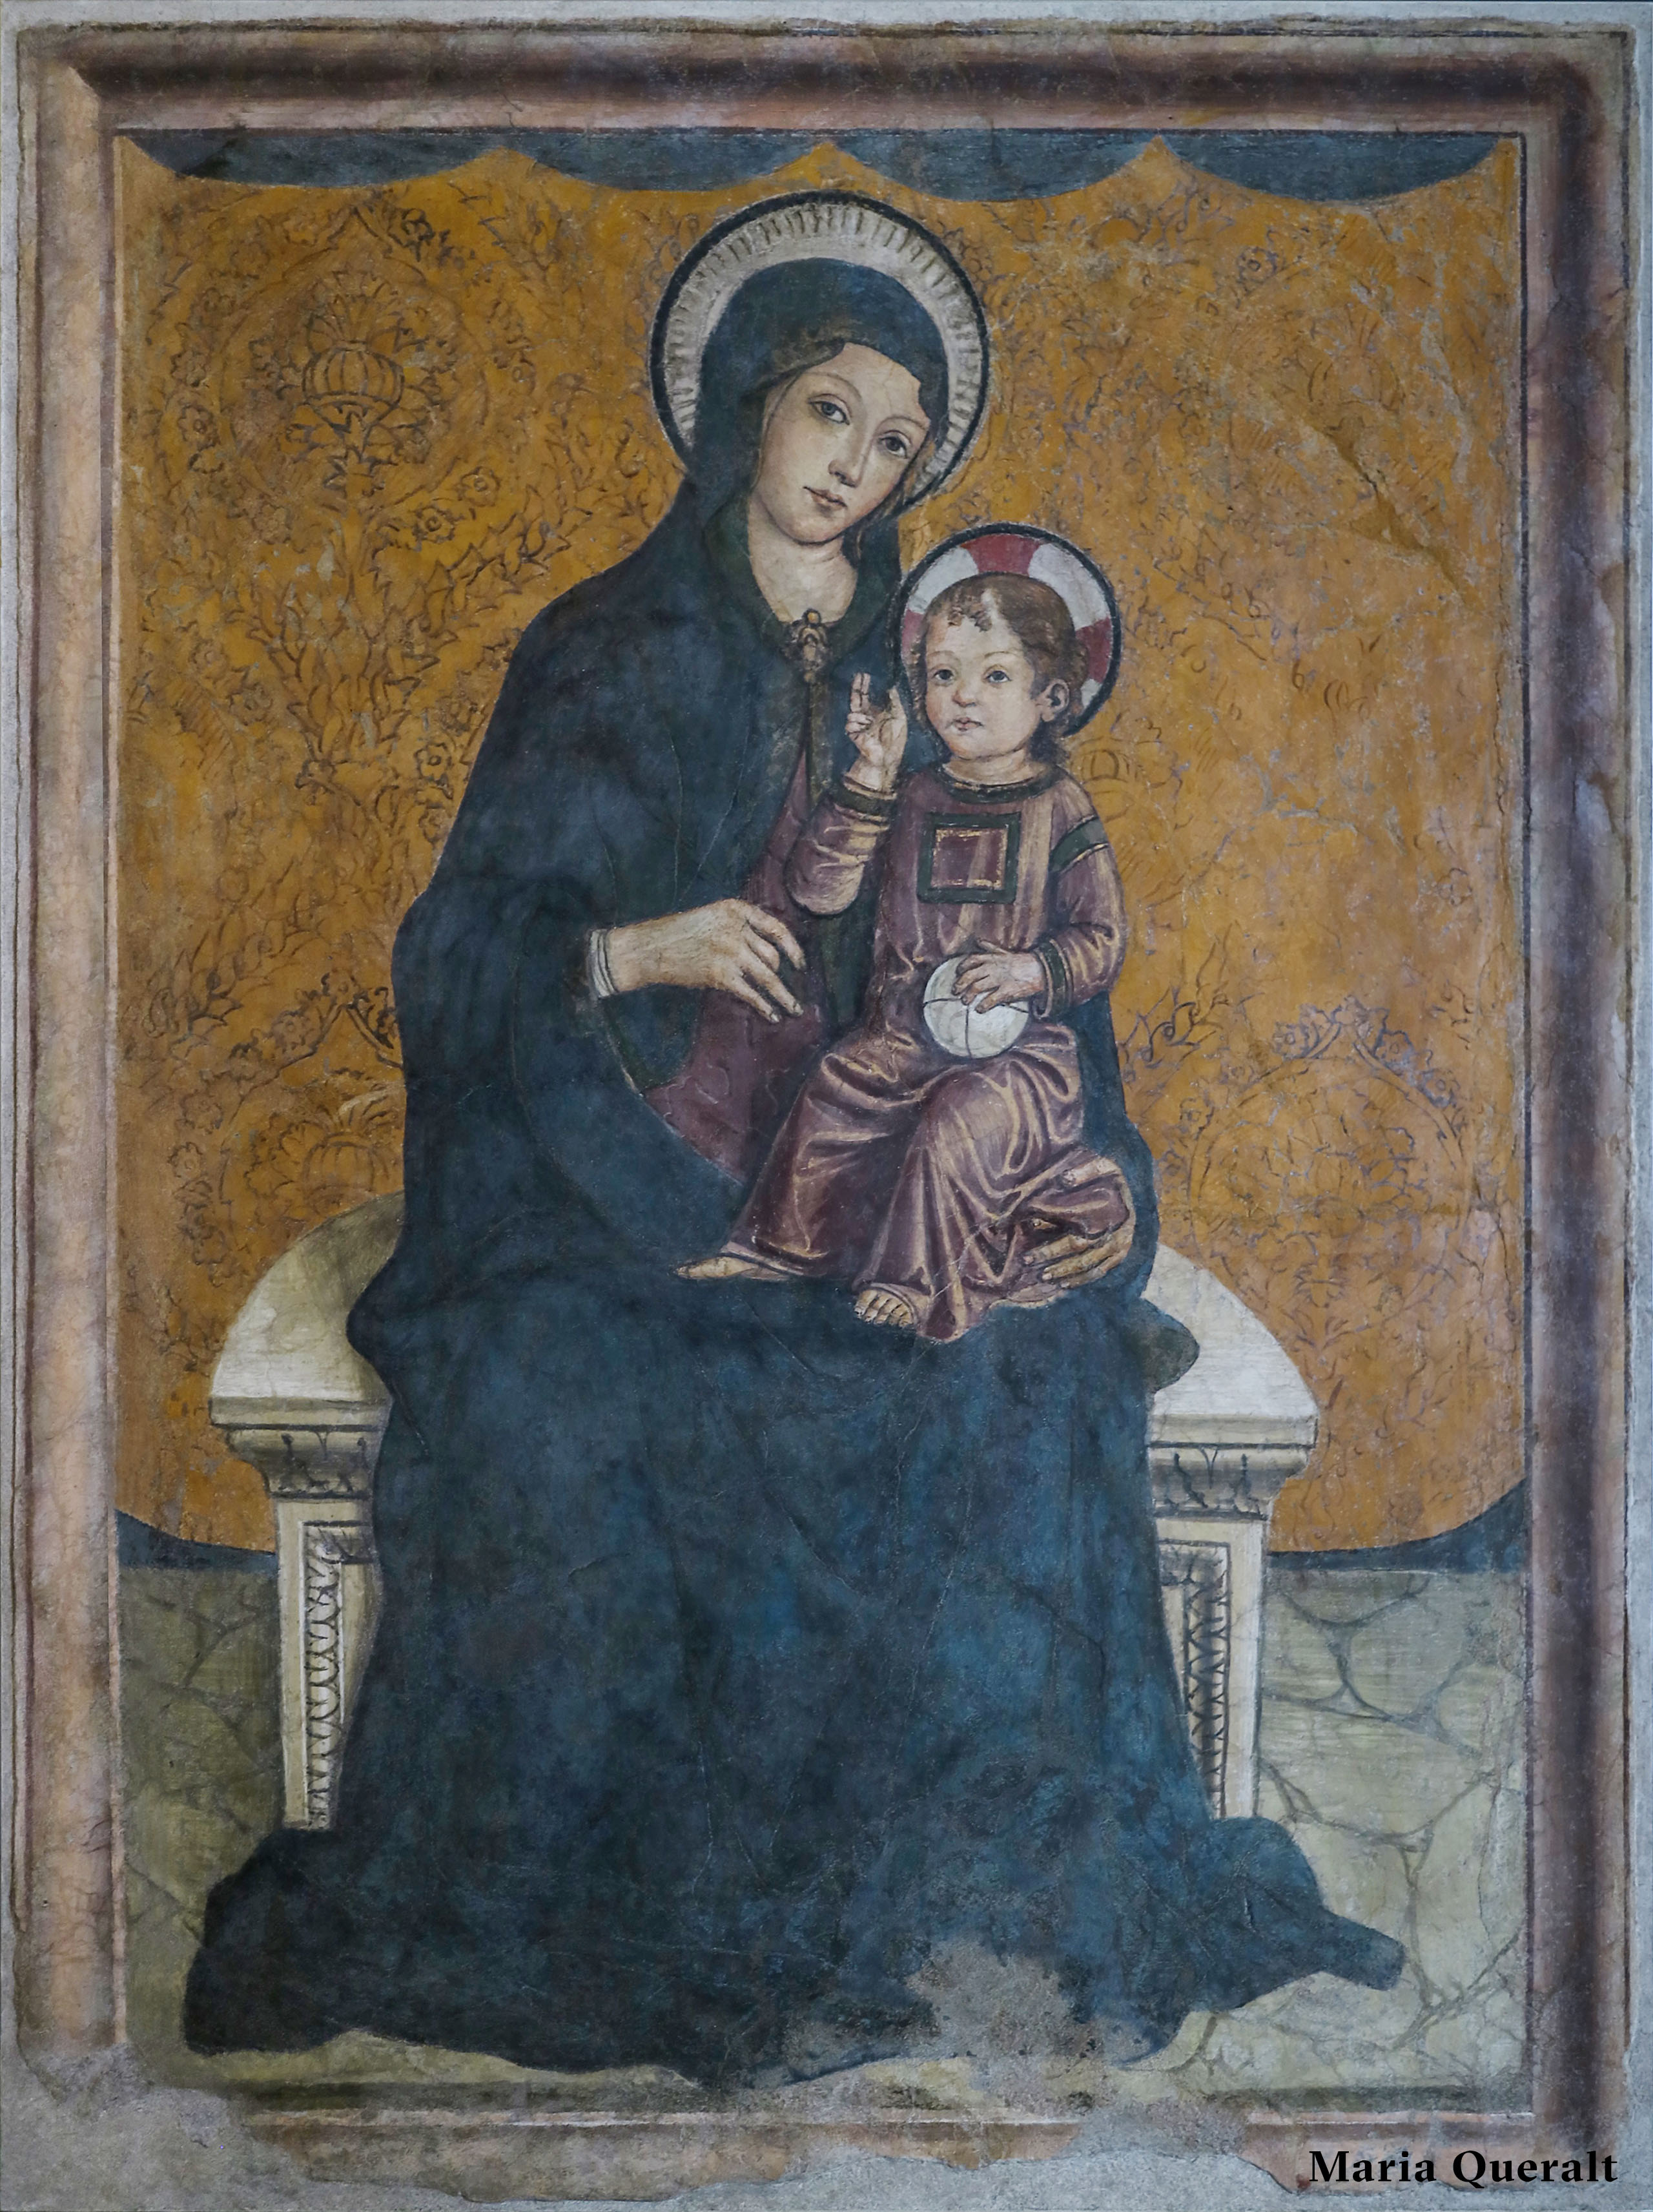 Medieval Painting of Enthroned Madonna and Child by Antoniazzo Romano at the Capitoline Museums in Rome Photography and retouch by Maria Queralt